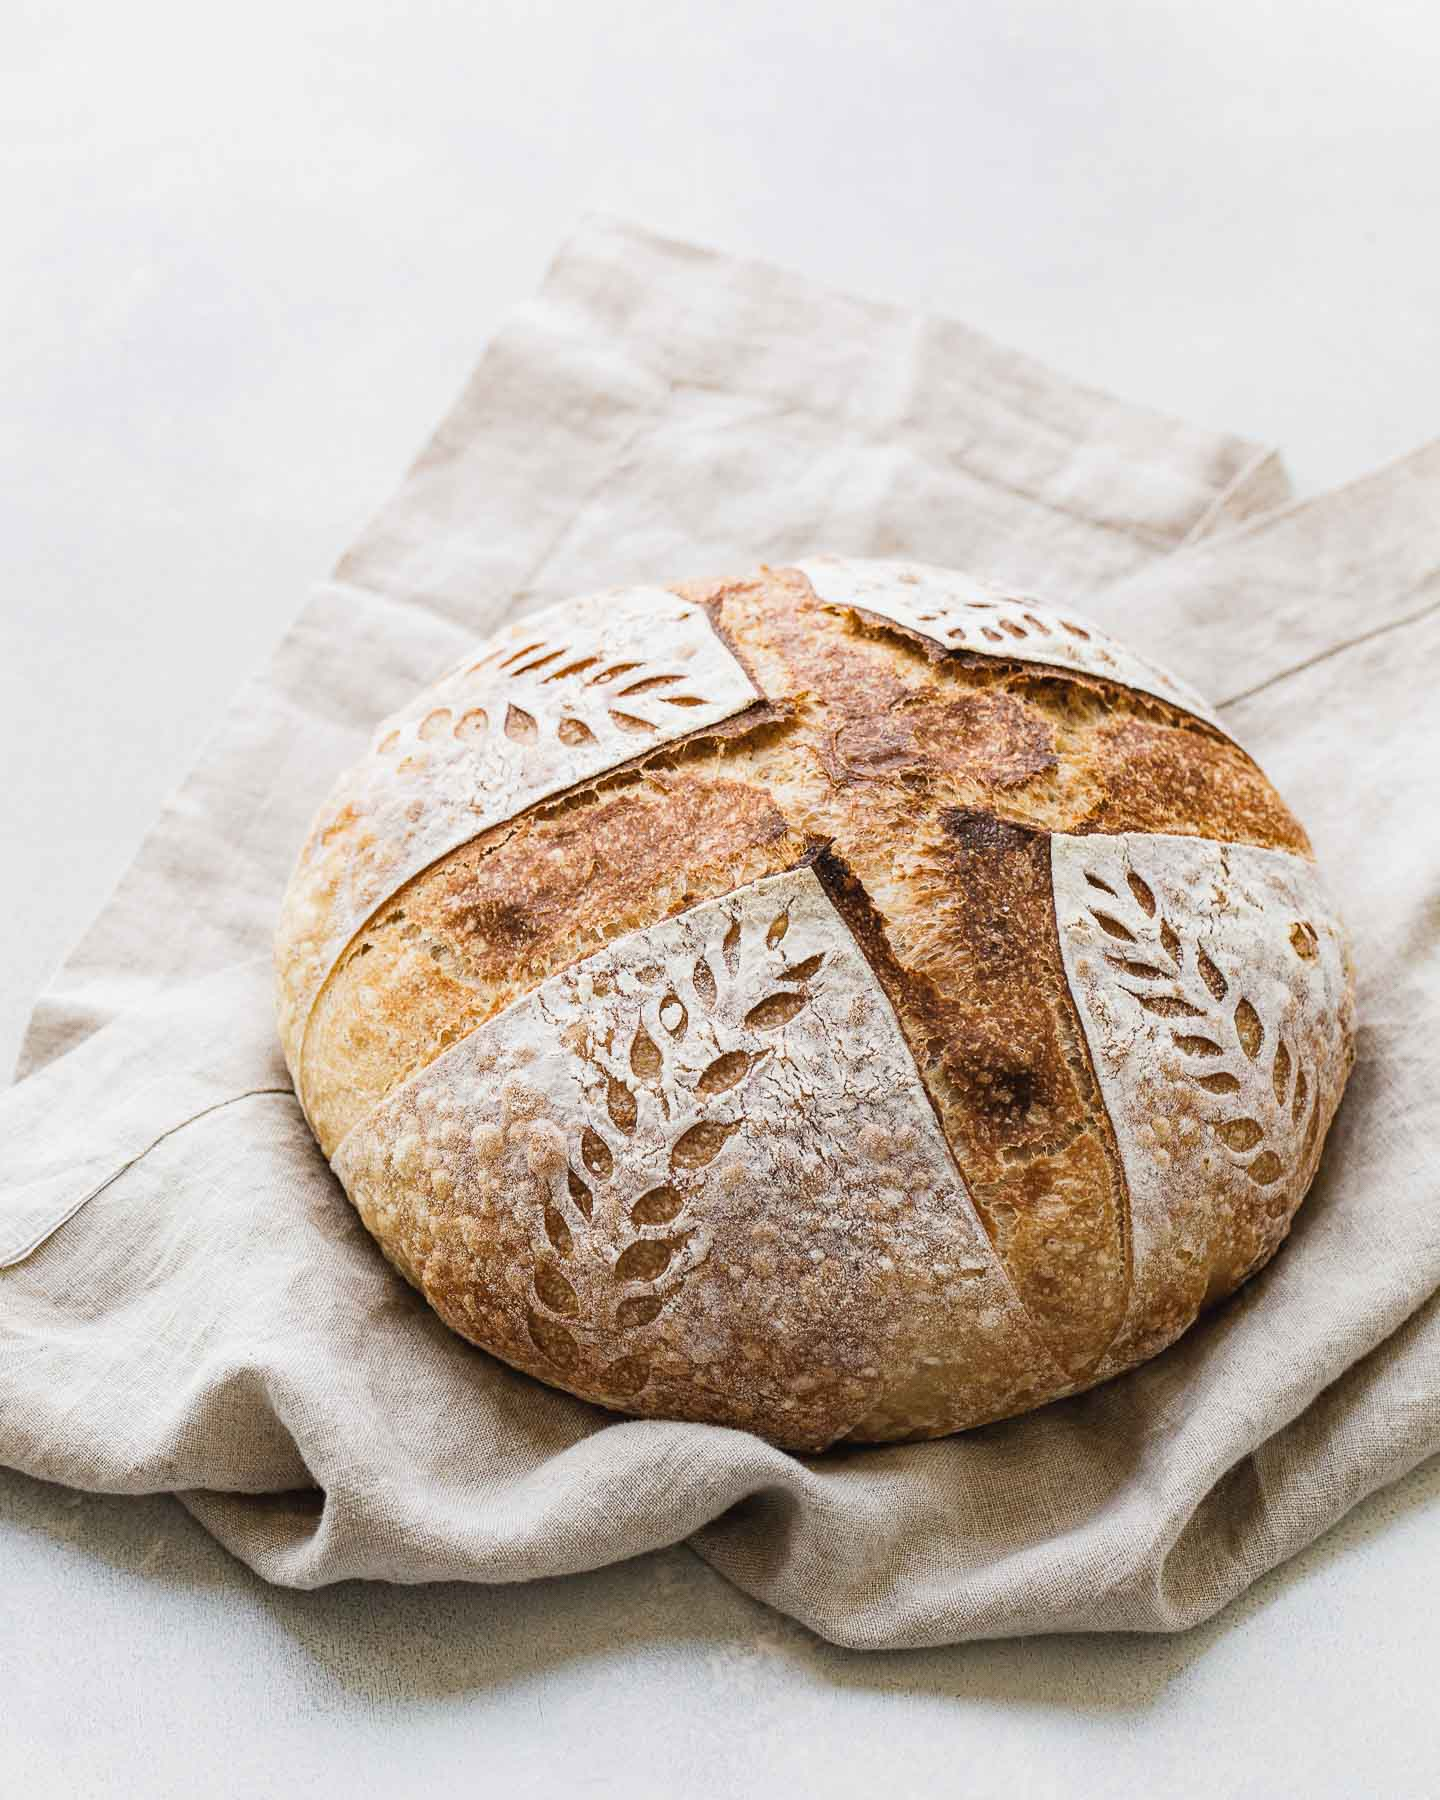 A beautiful loaf of sourdough bread on a linen napkin.